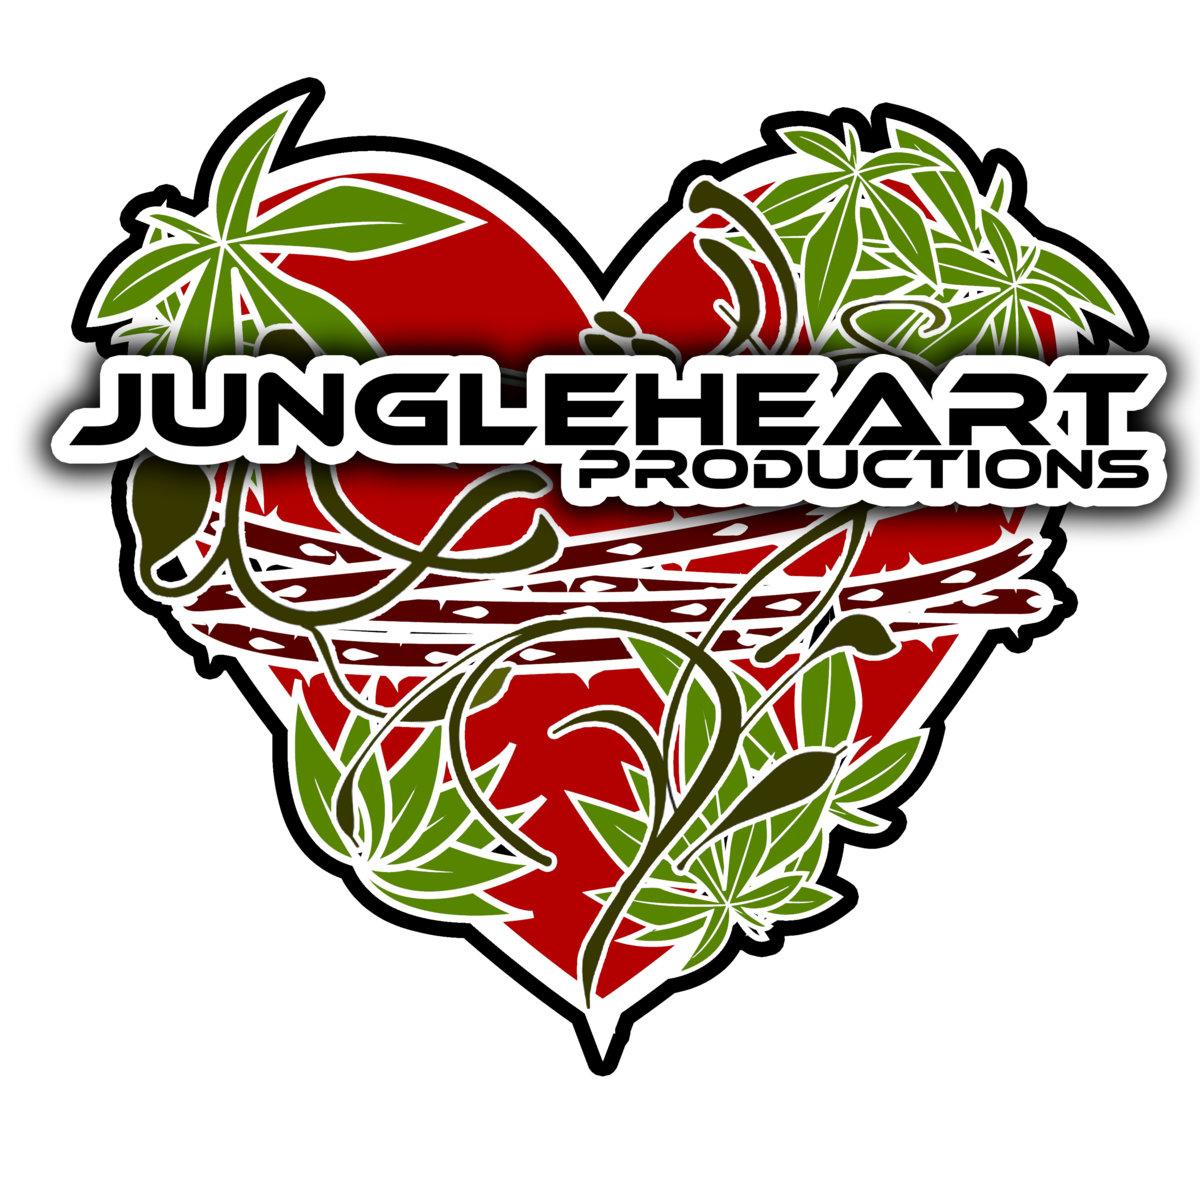 jungleheart productions image - Youtube White Christmas